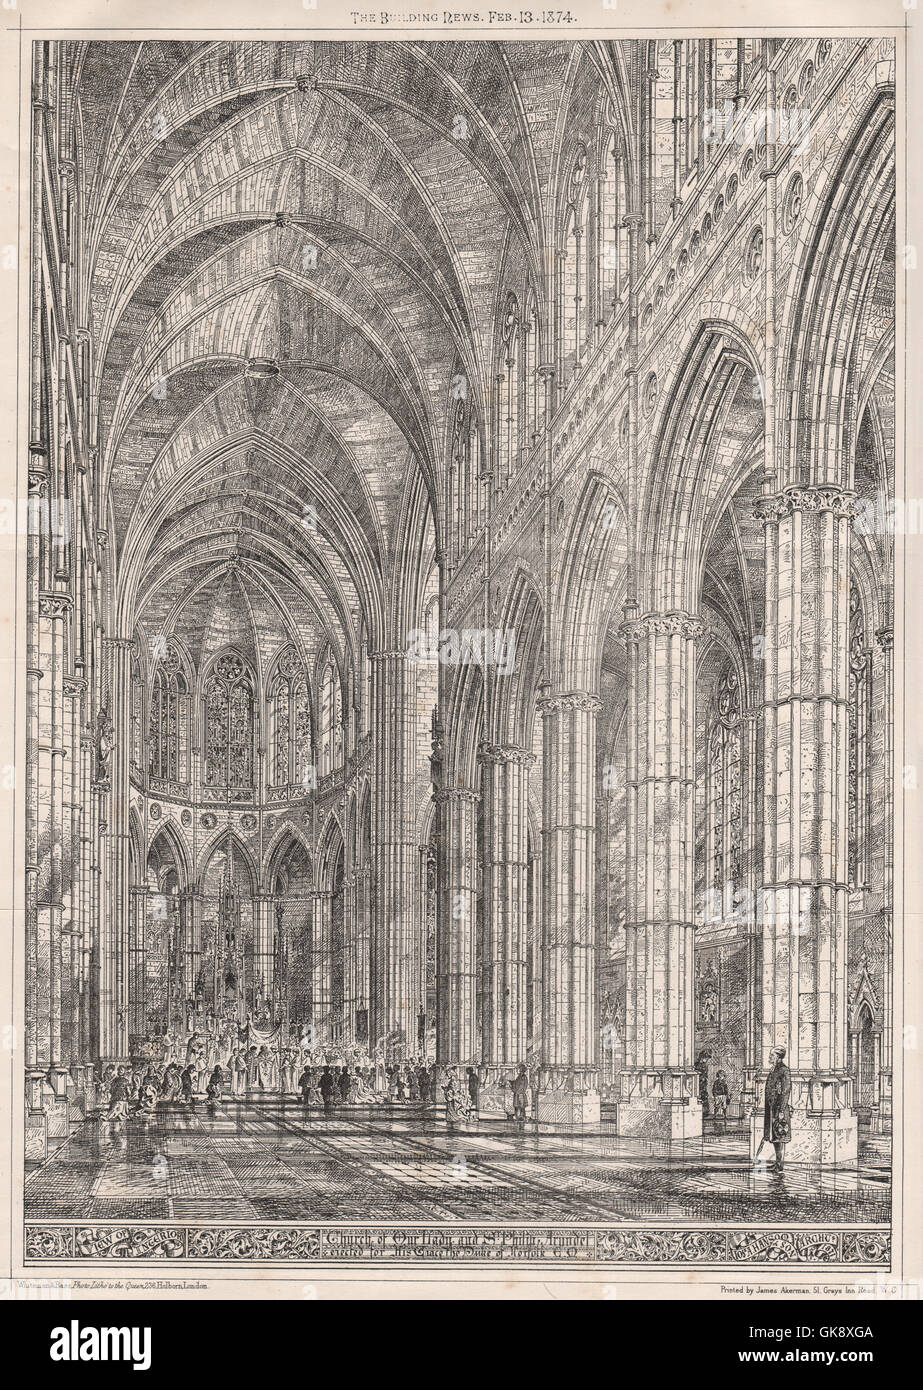 Church of Our Lady & St. Philip, Arundel, for the Duke of Norfolk. Sussex, 1874 - Stock Image